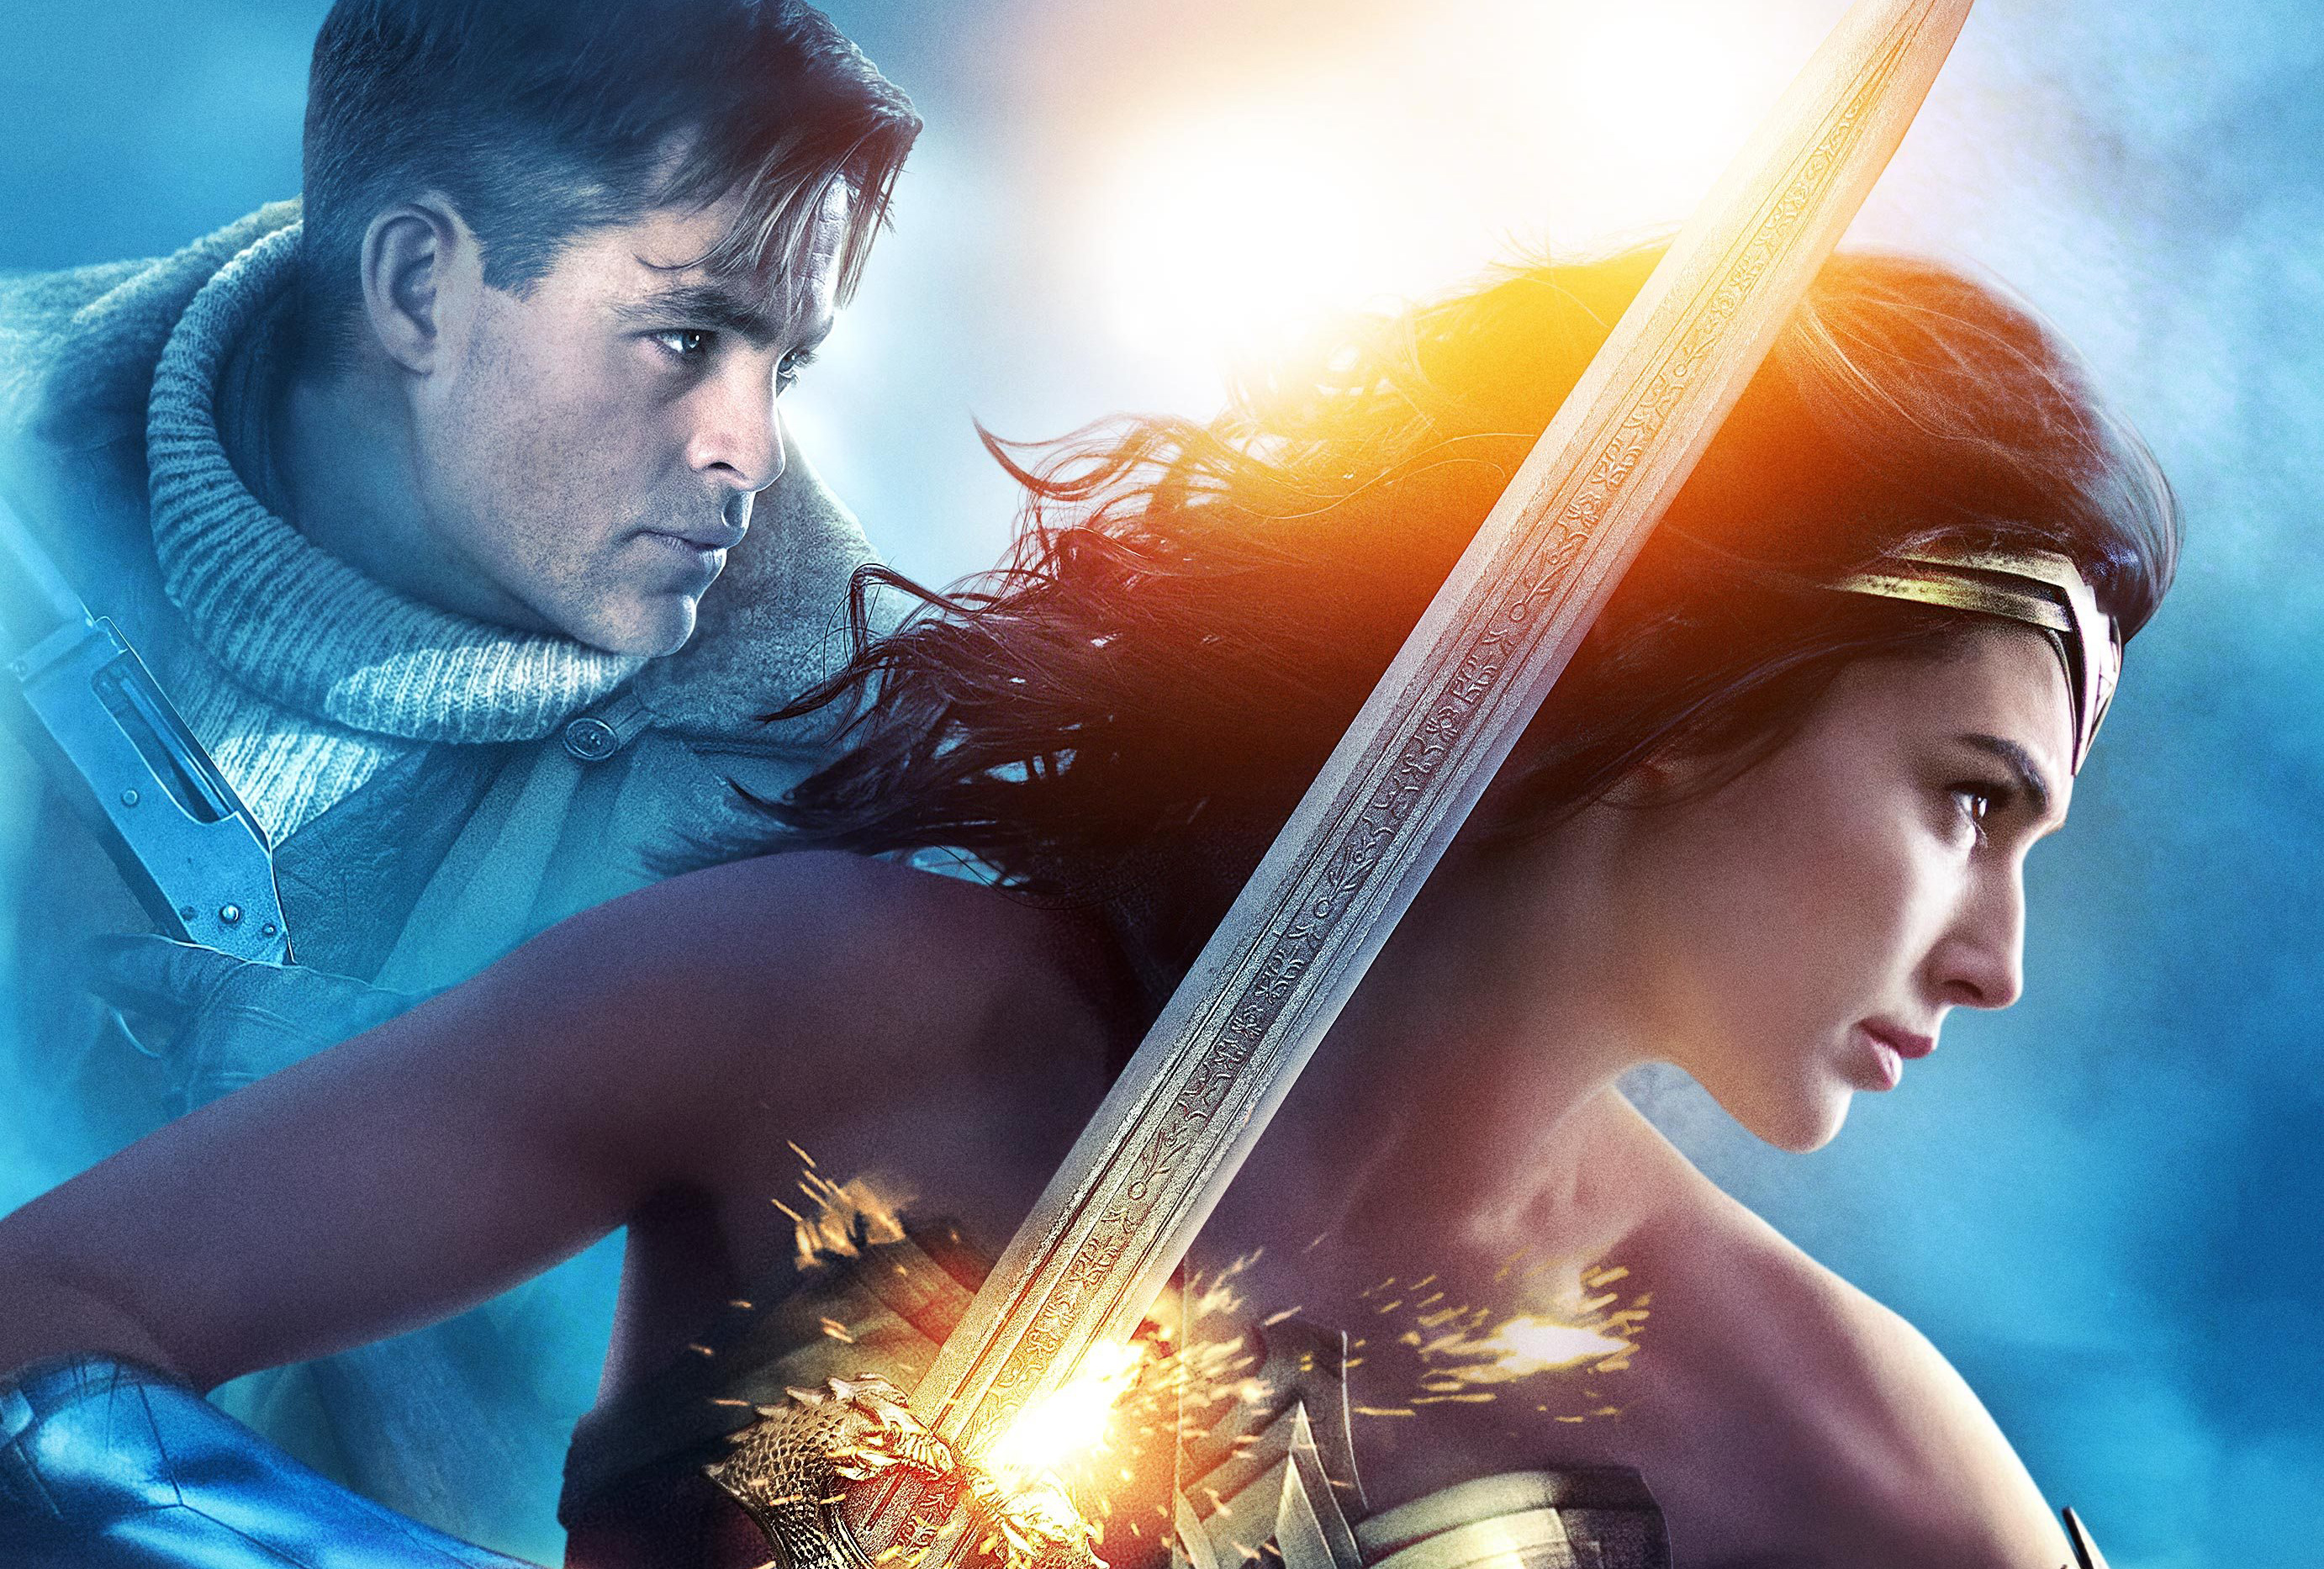 1366x768 gal gadot and chris pine in wonder woman 1366x768 resolution hd 4k wallpapers images backgrounds photos and pictures hdqwalls